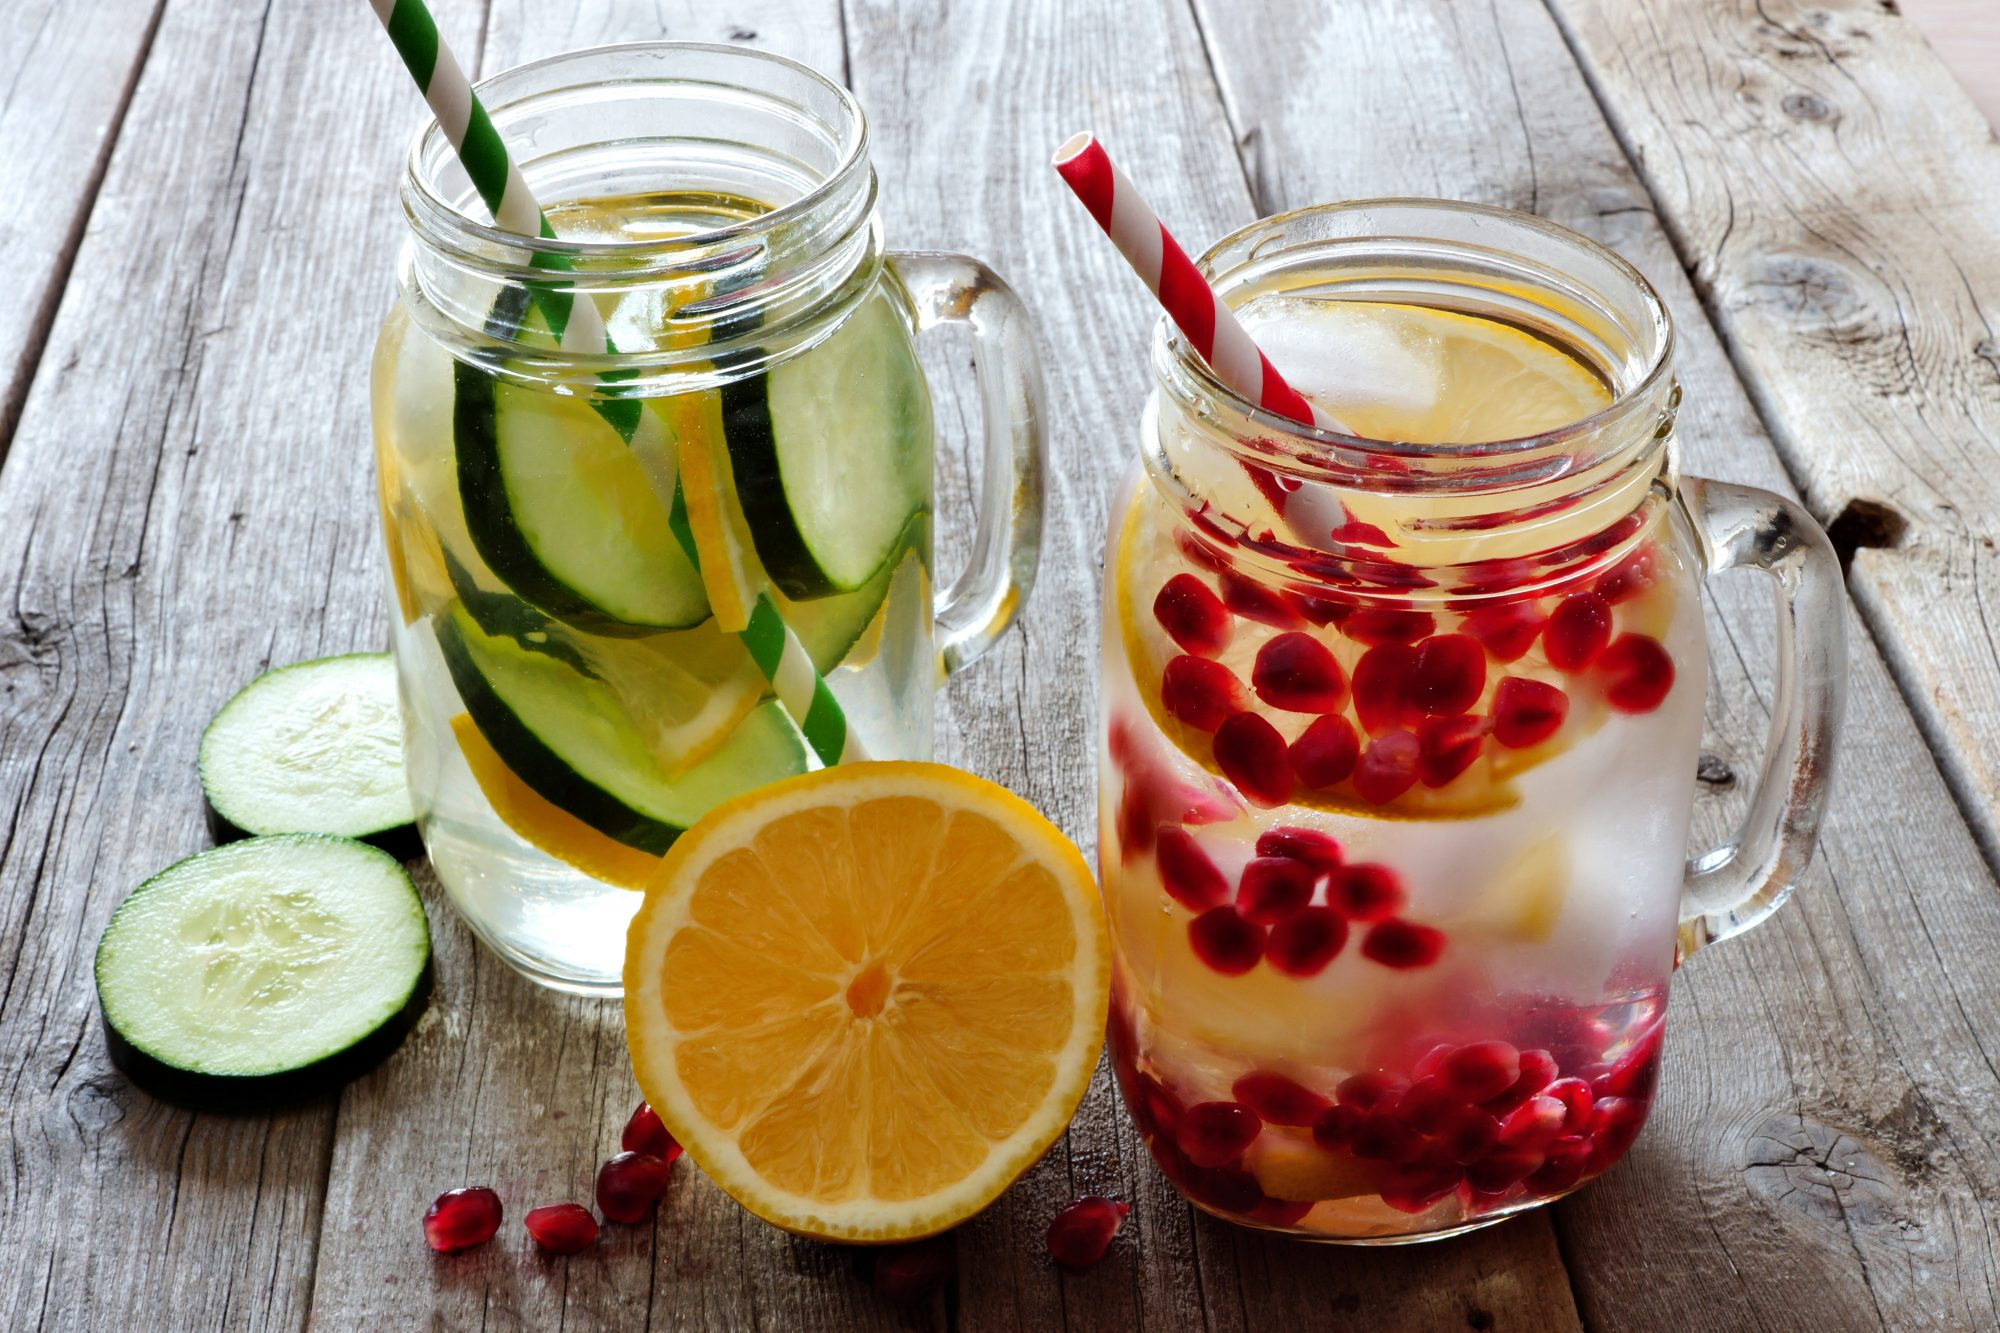 7 Infused Water Recipes That Will Make Your H20 Much Tastier and Even Healthier